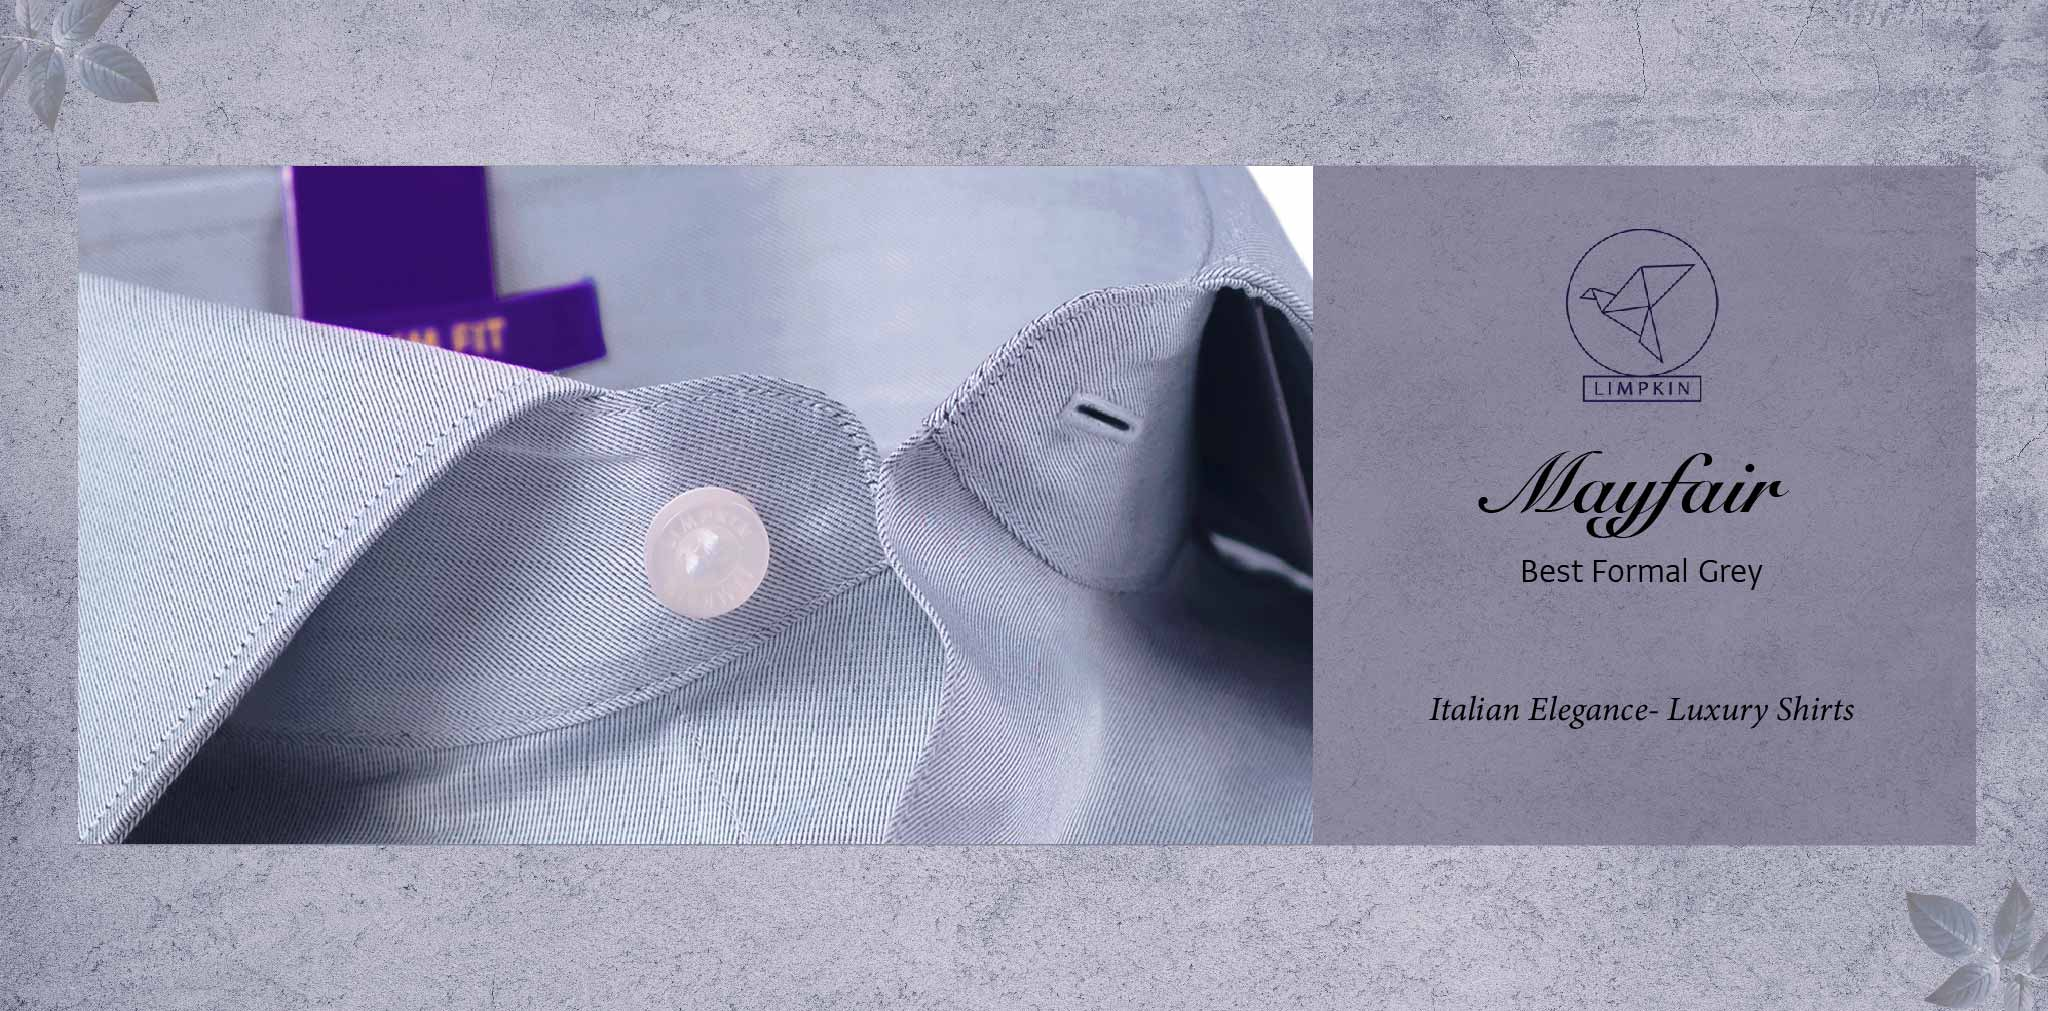 Mayfair- Best Formal Grey- 2/140 Egyptian Giza Cotton- Delivery from 26th Jan - Banner